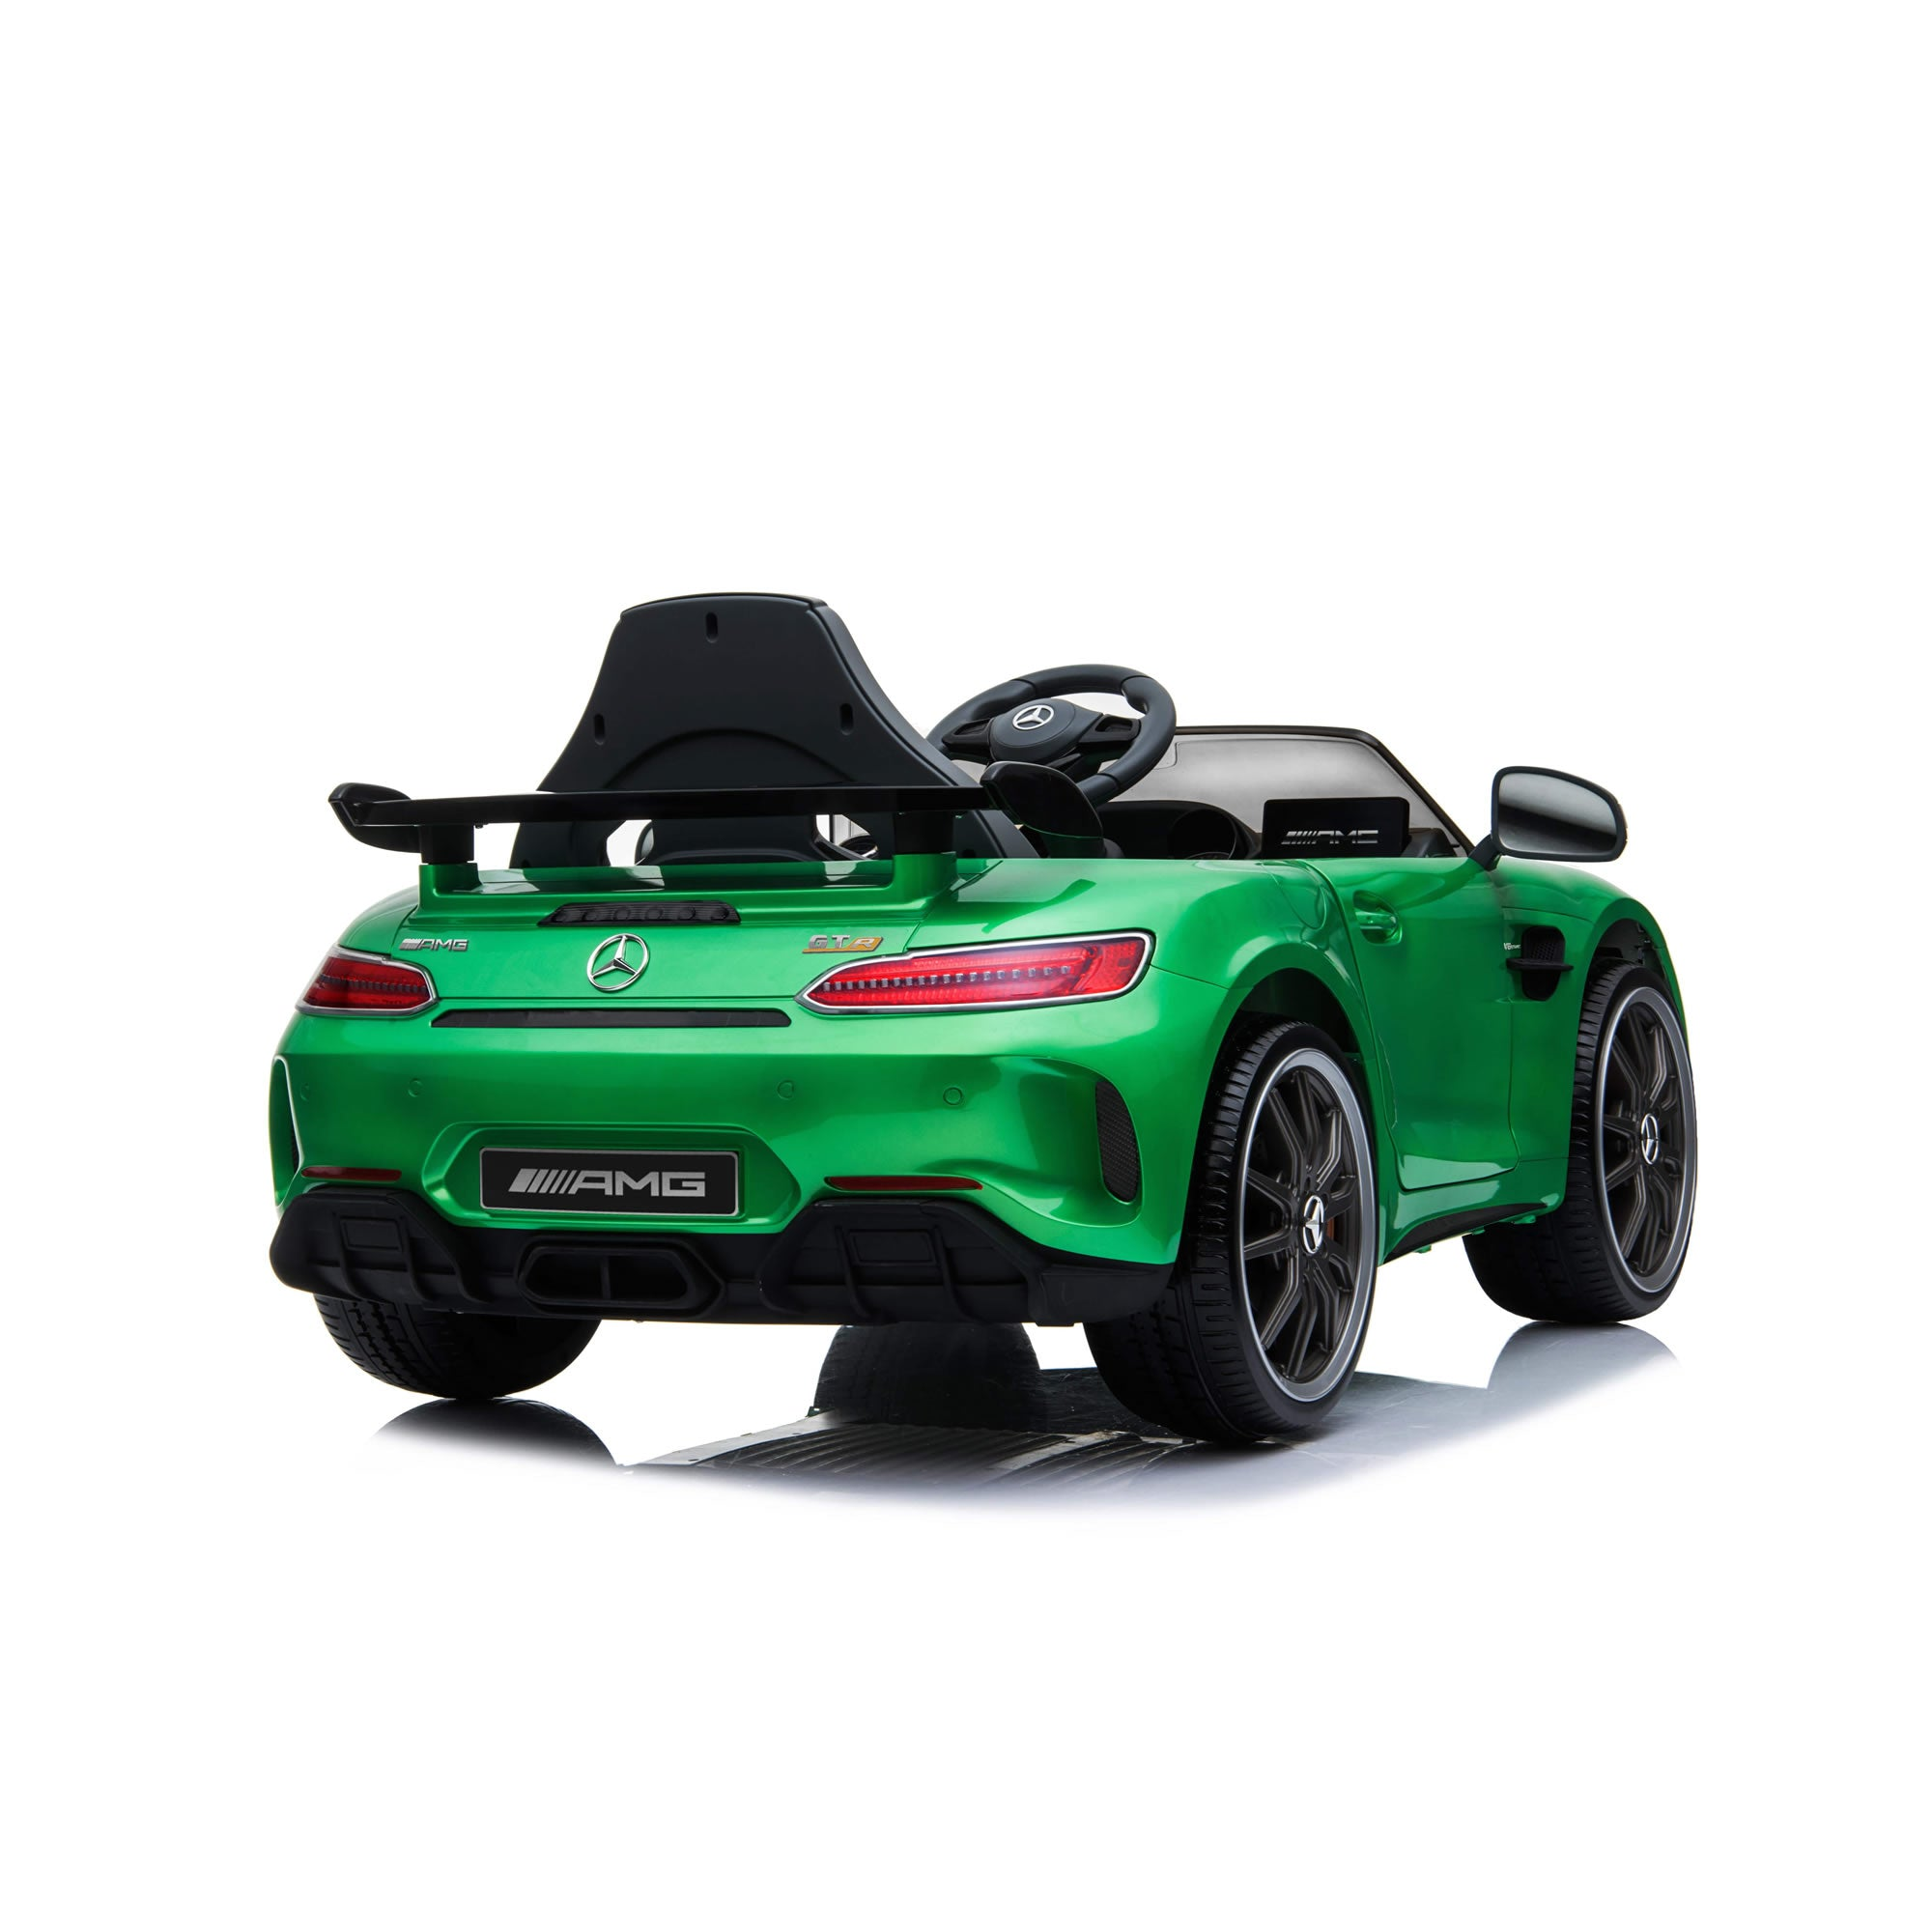 Licensed Mercedes Benz GTR 12v Ride on Car - Green